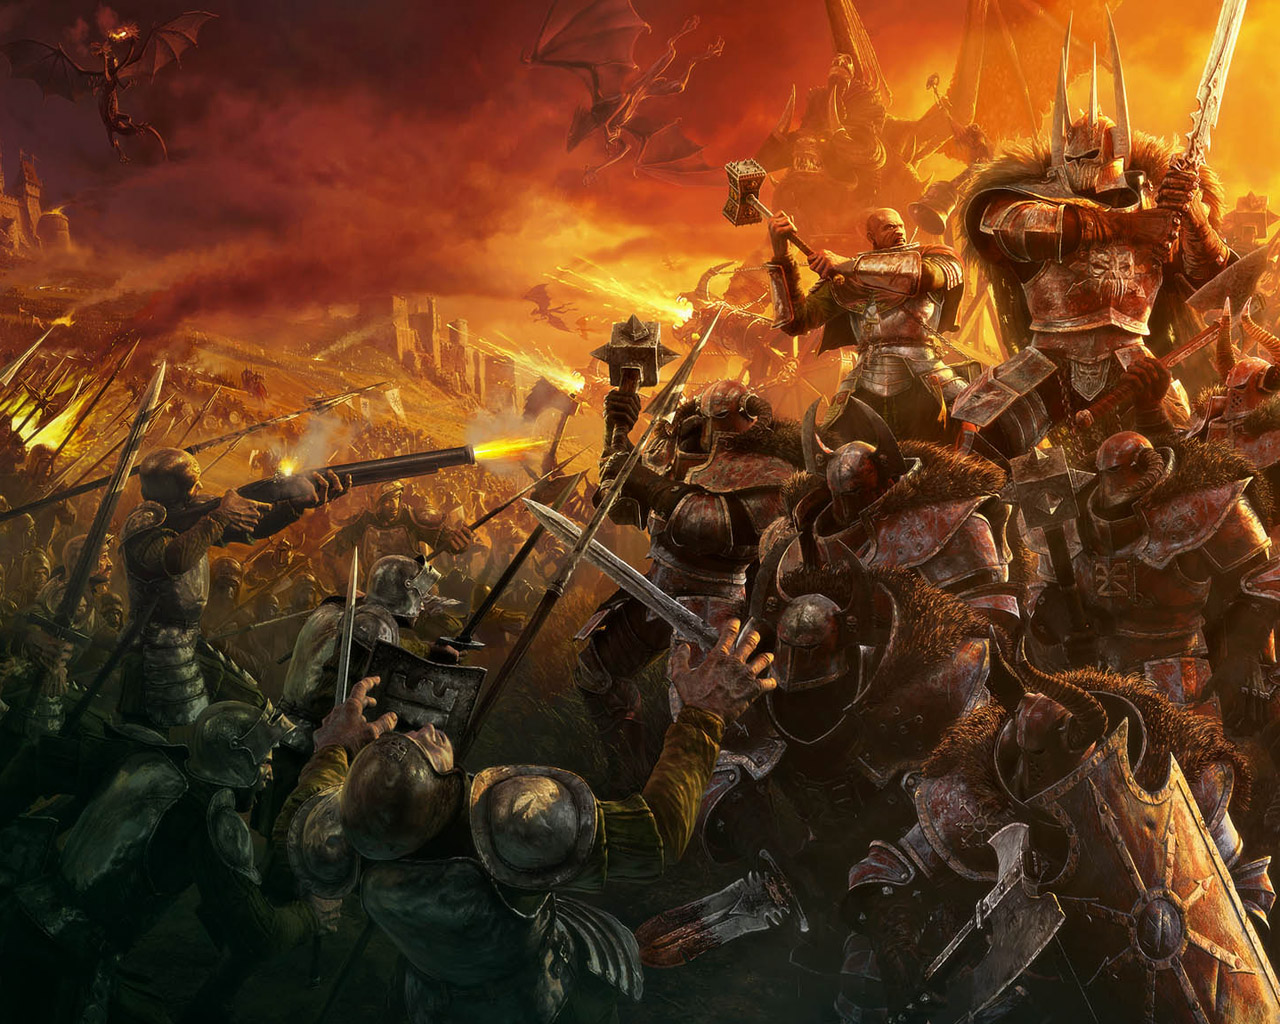 Warhammer Wallpapers